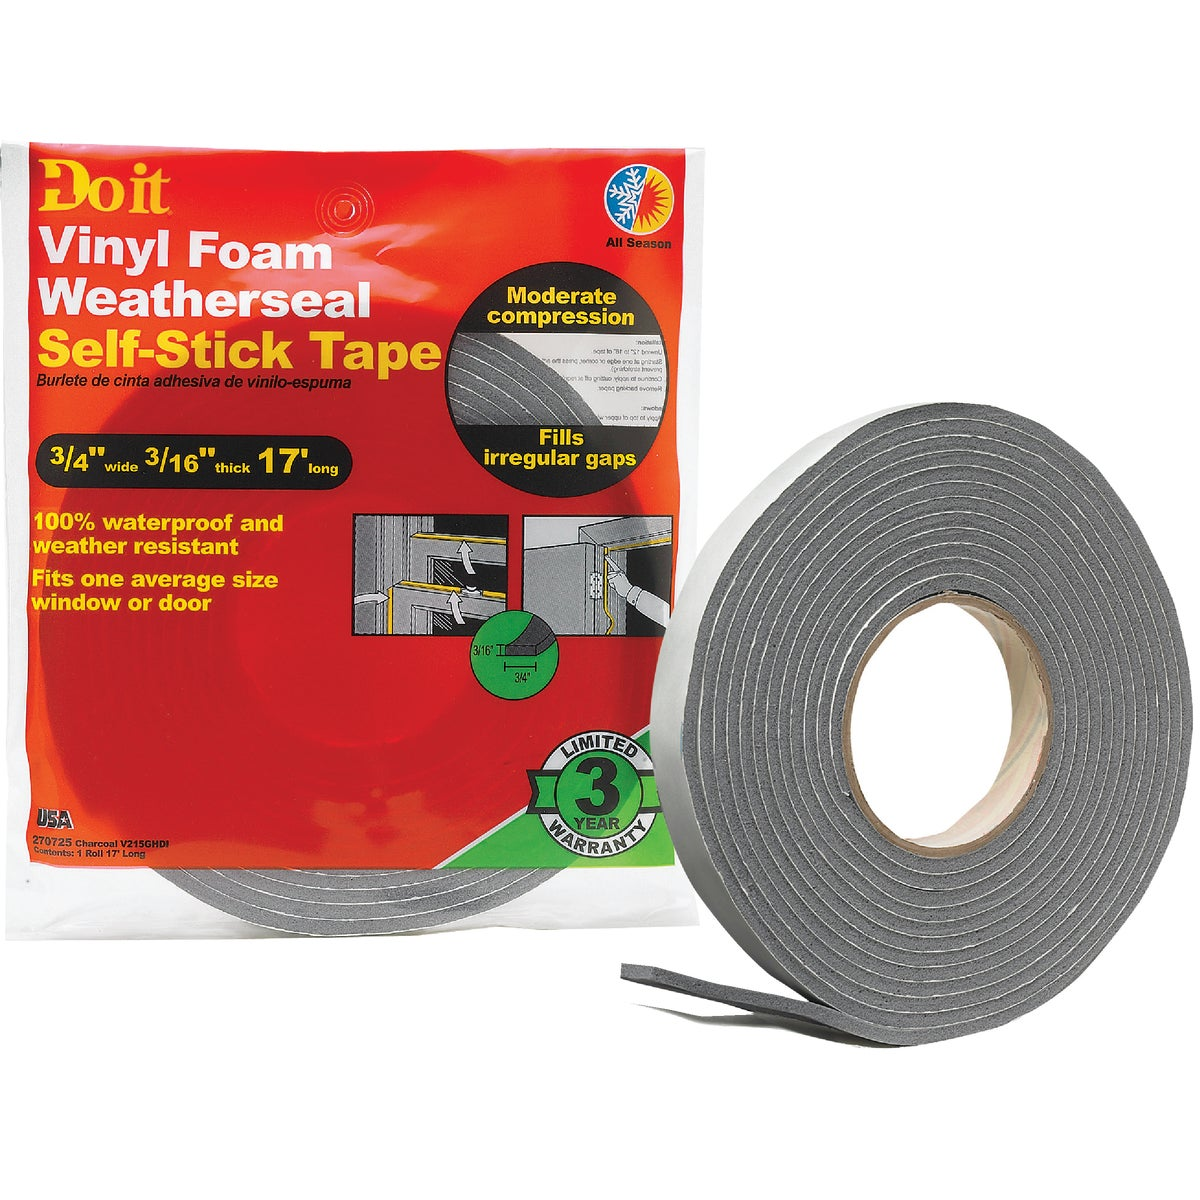 3/4X3/16X17 VNL/FOM TAPE - V215GHDI by Thermwell Prods Co